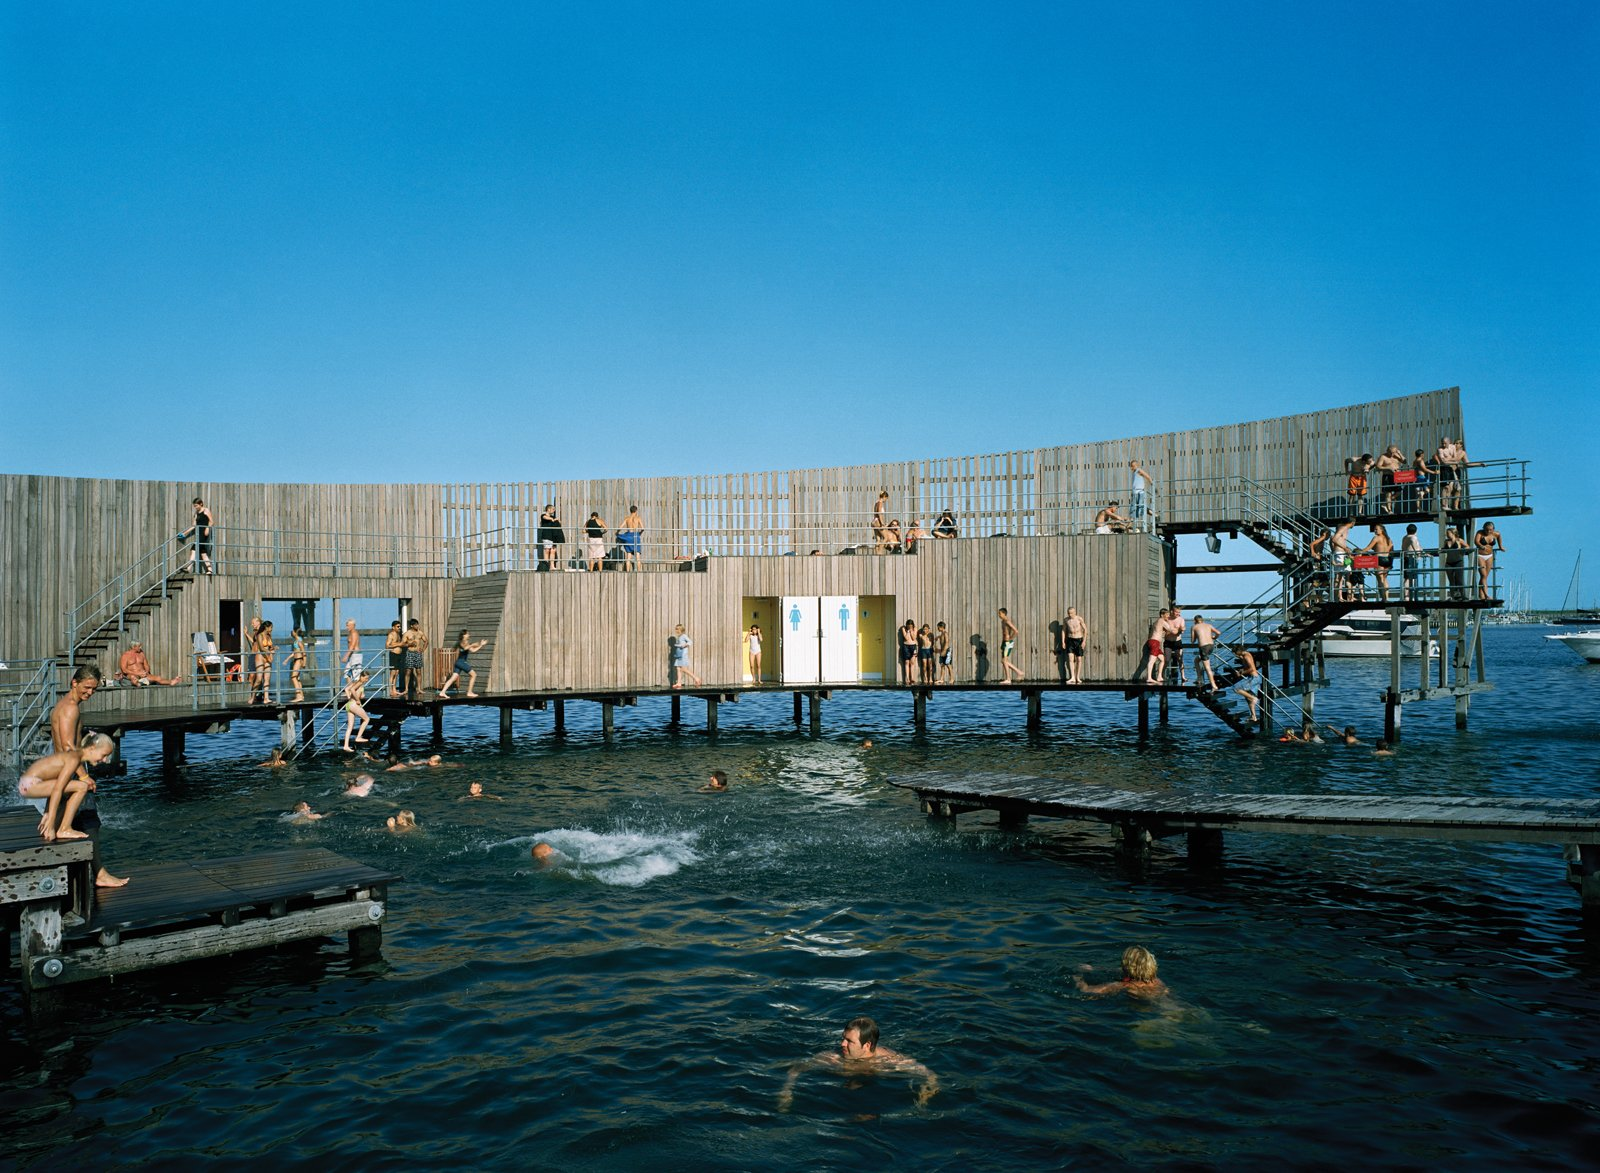 The sea bath's shape creates great acoustics, which local musicians frequently take advantage of by performing impromptu concerts in the middle of the structure. As the structure curves around, two pathways are formed: The outer path ascends into a diving platform, and the inner path remains level, for wheelchair accessibility. Photo by Åke E:son Lindman.  Photo 2 of 2 in Dunkin' Danish